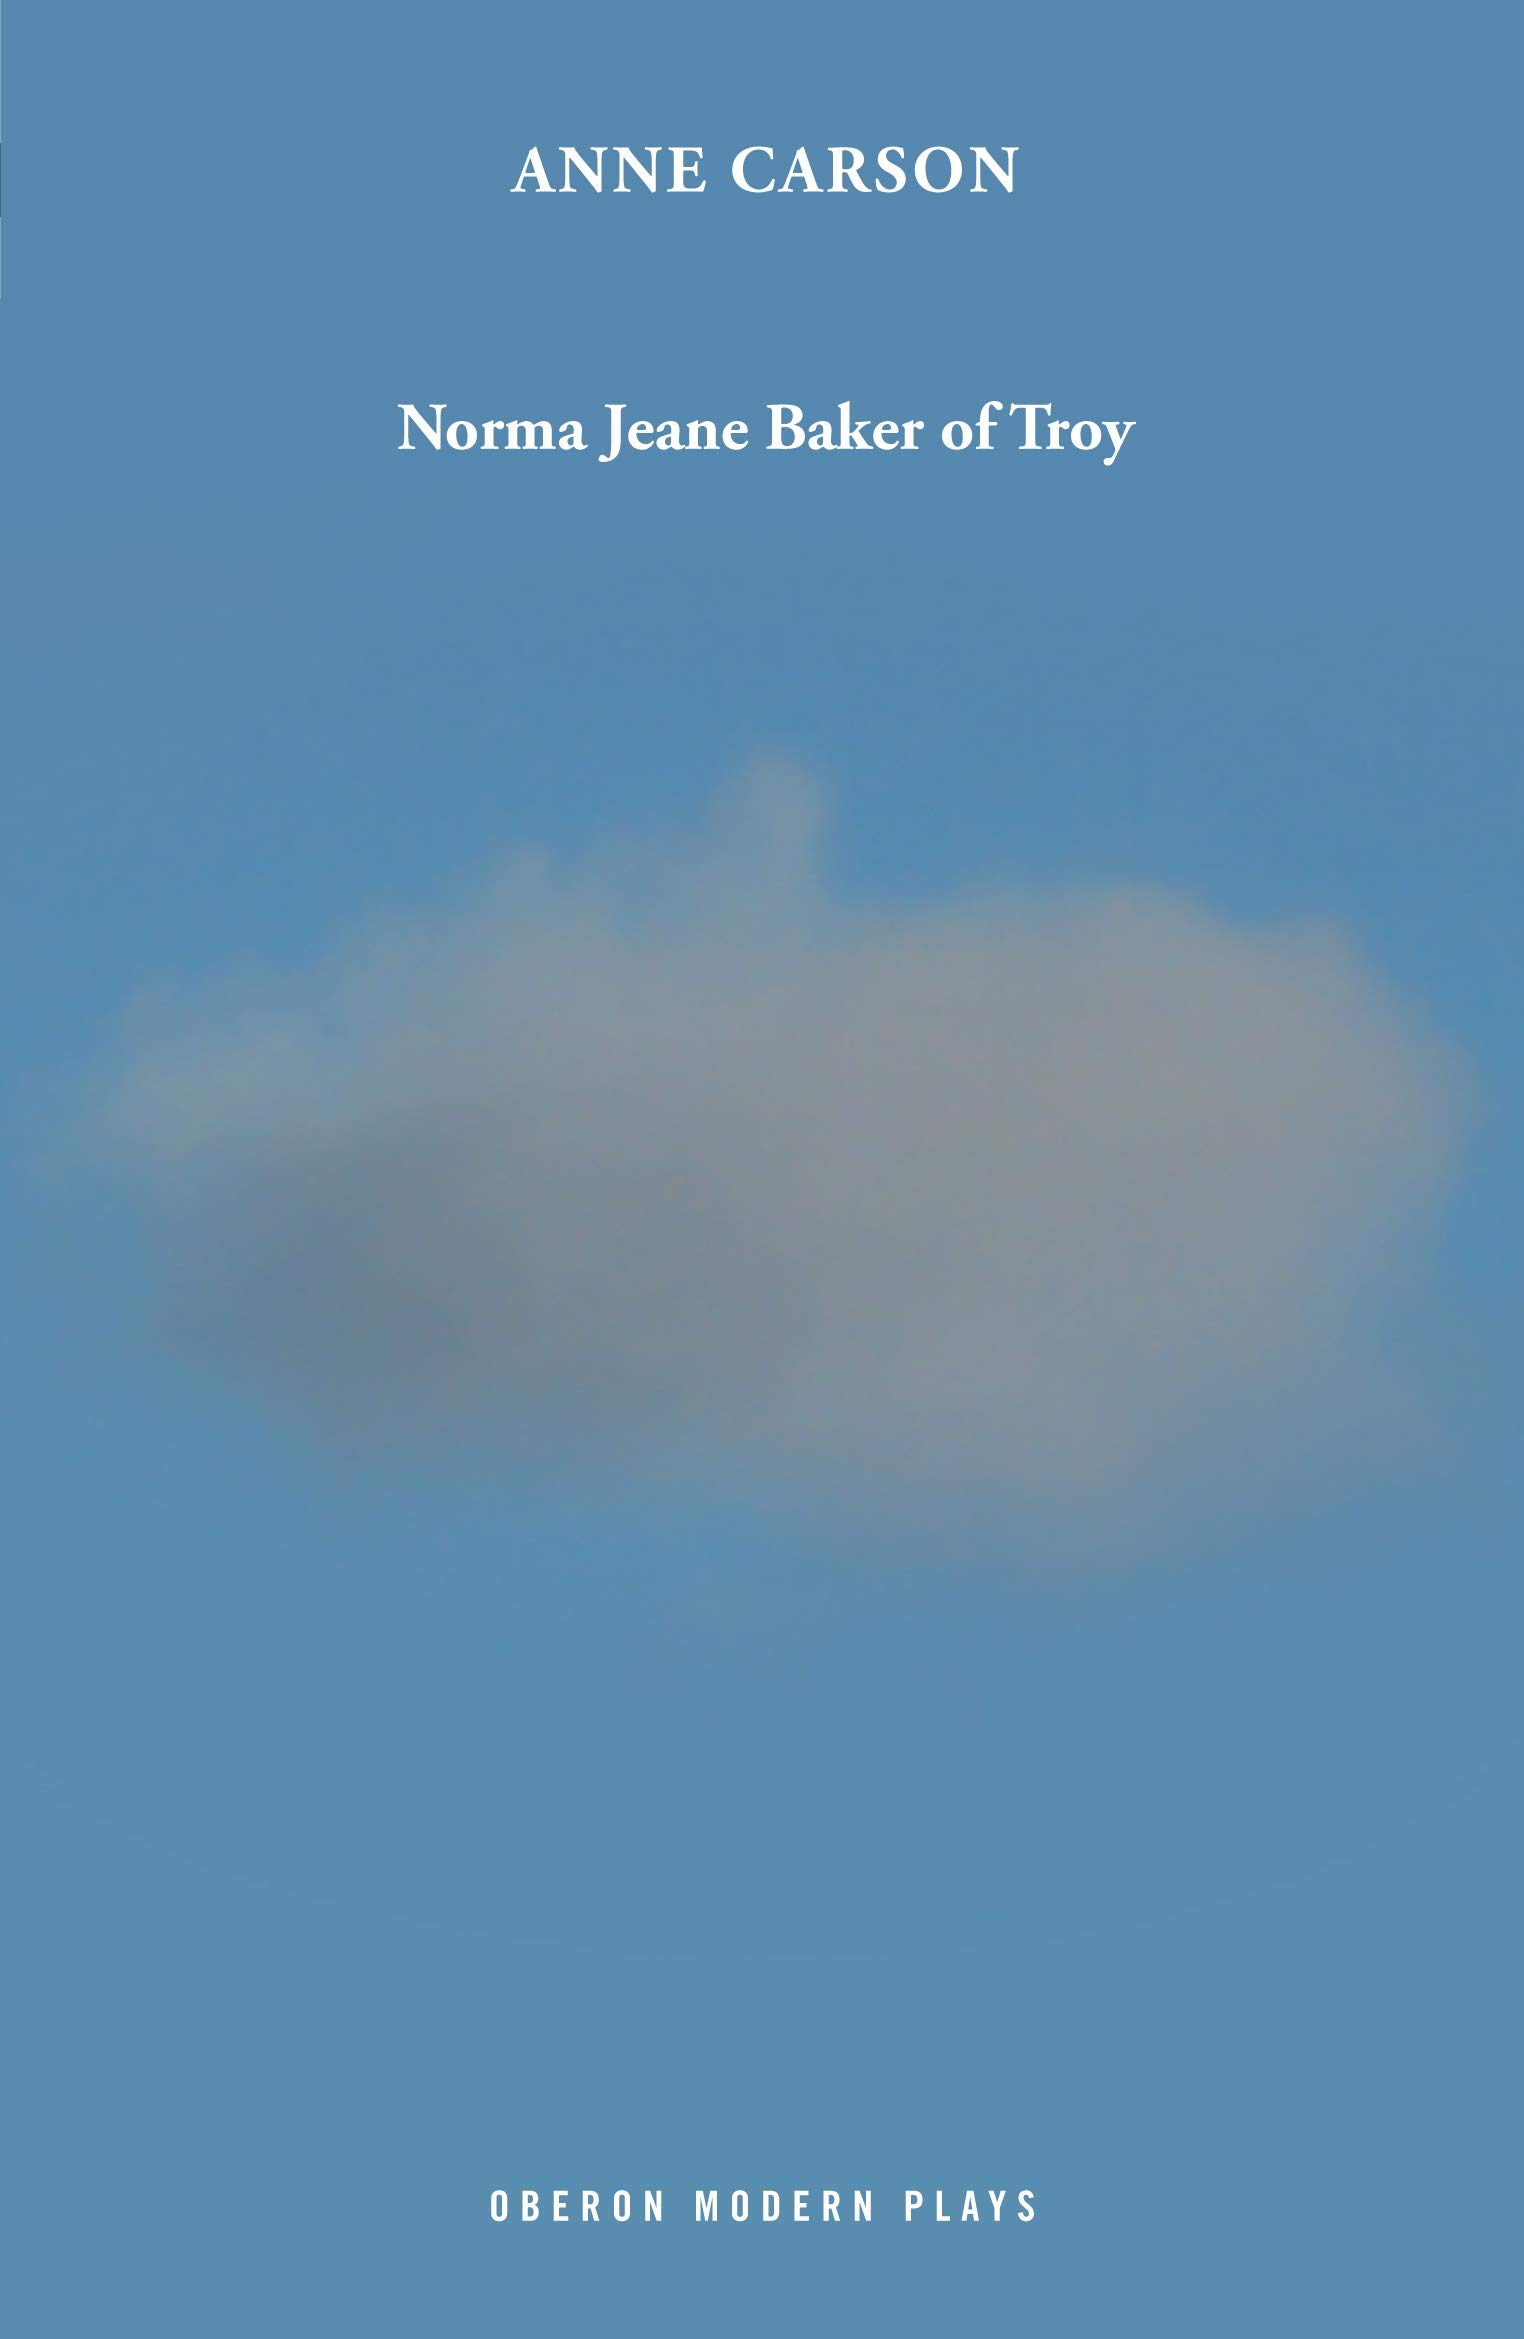 Norma Jeane Baker of Troy (Oberon Modern Plays)